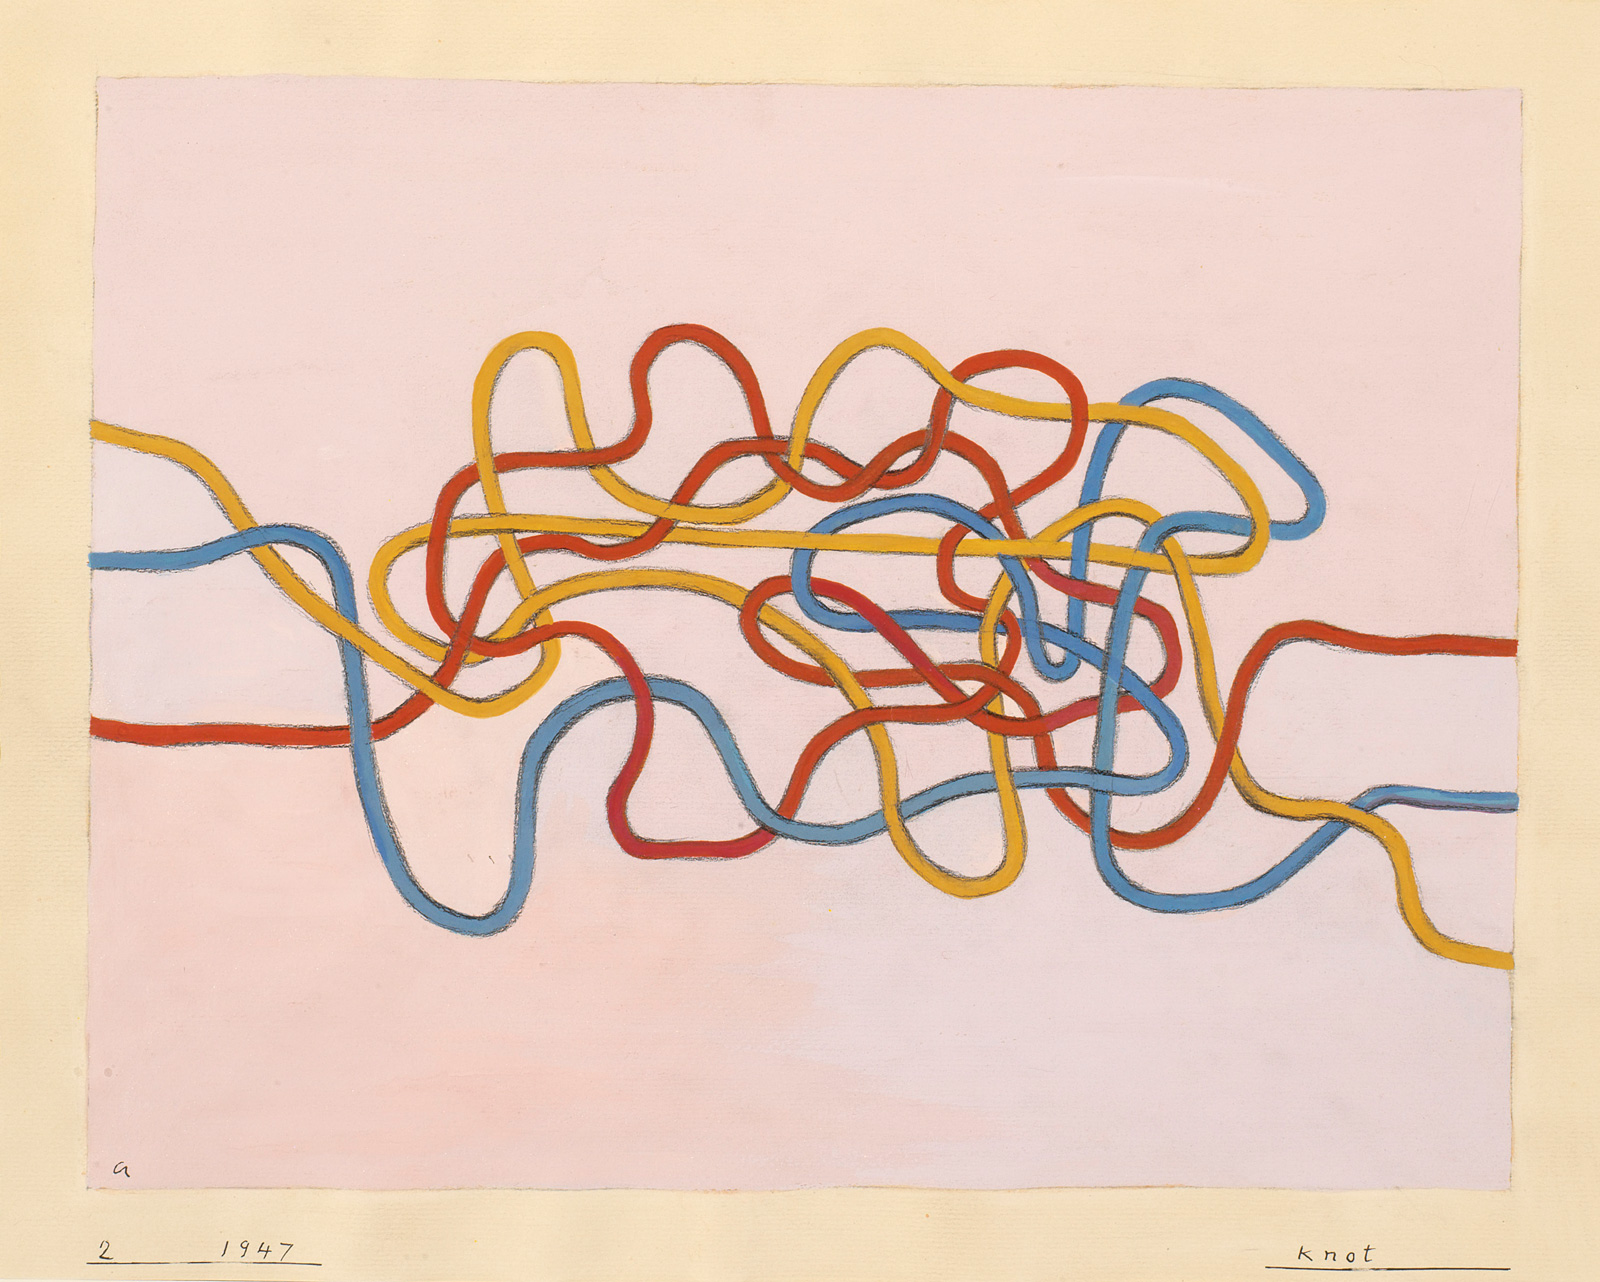 albers-knot-1947